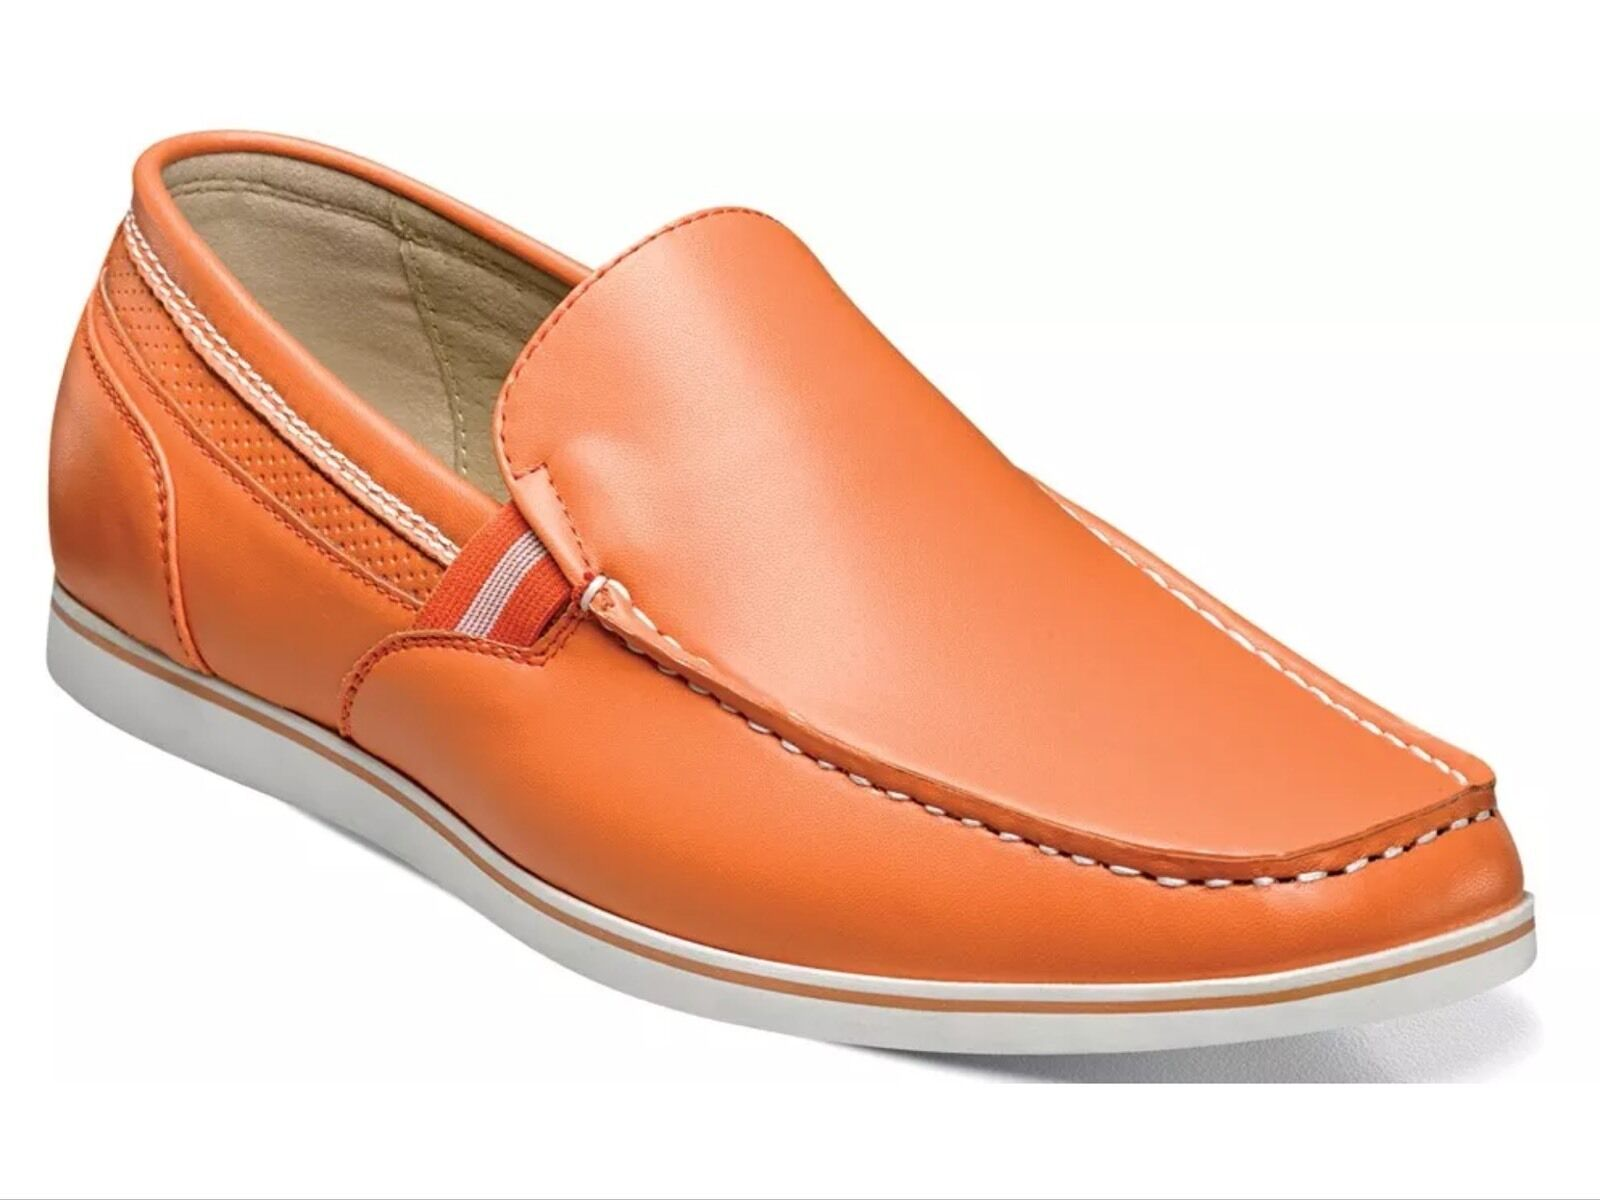 Stacy Adams Men's Coy Moc Toe Classic Slip On Loafer shoes orange 25041 New